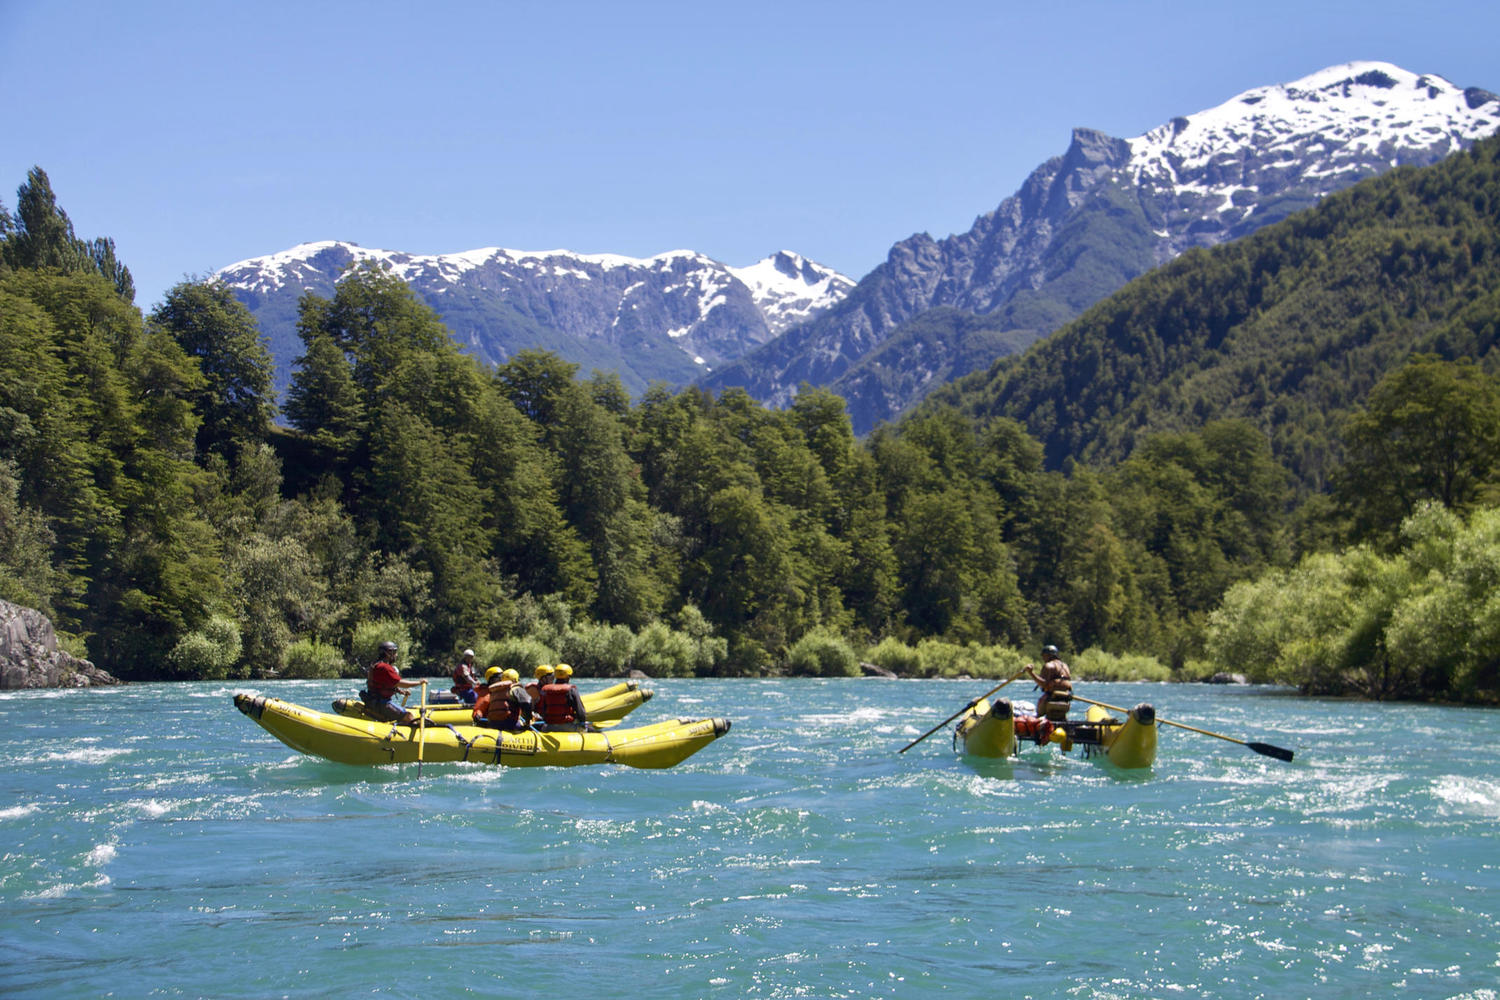 Rafting the Futaleufu River in Chilean Patagonia